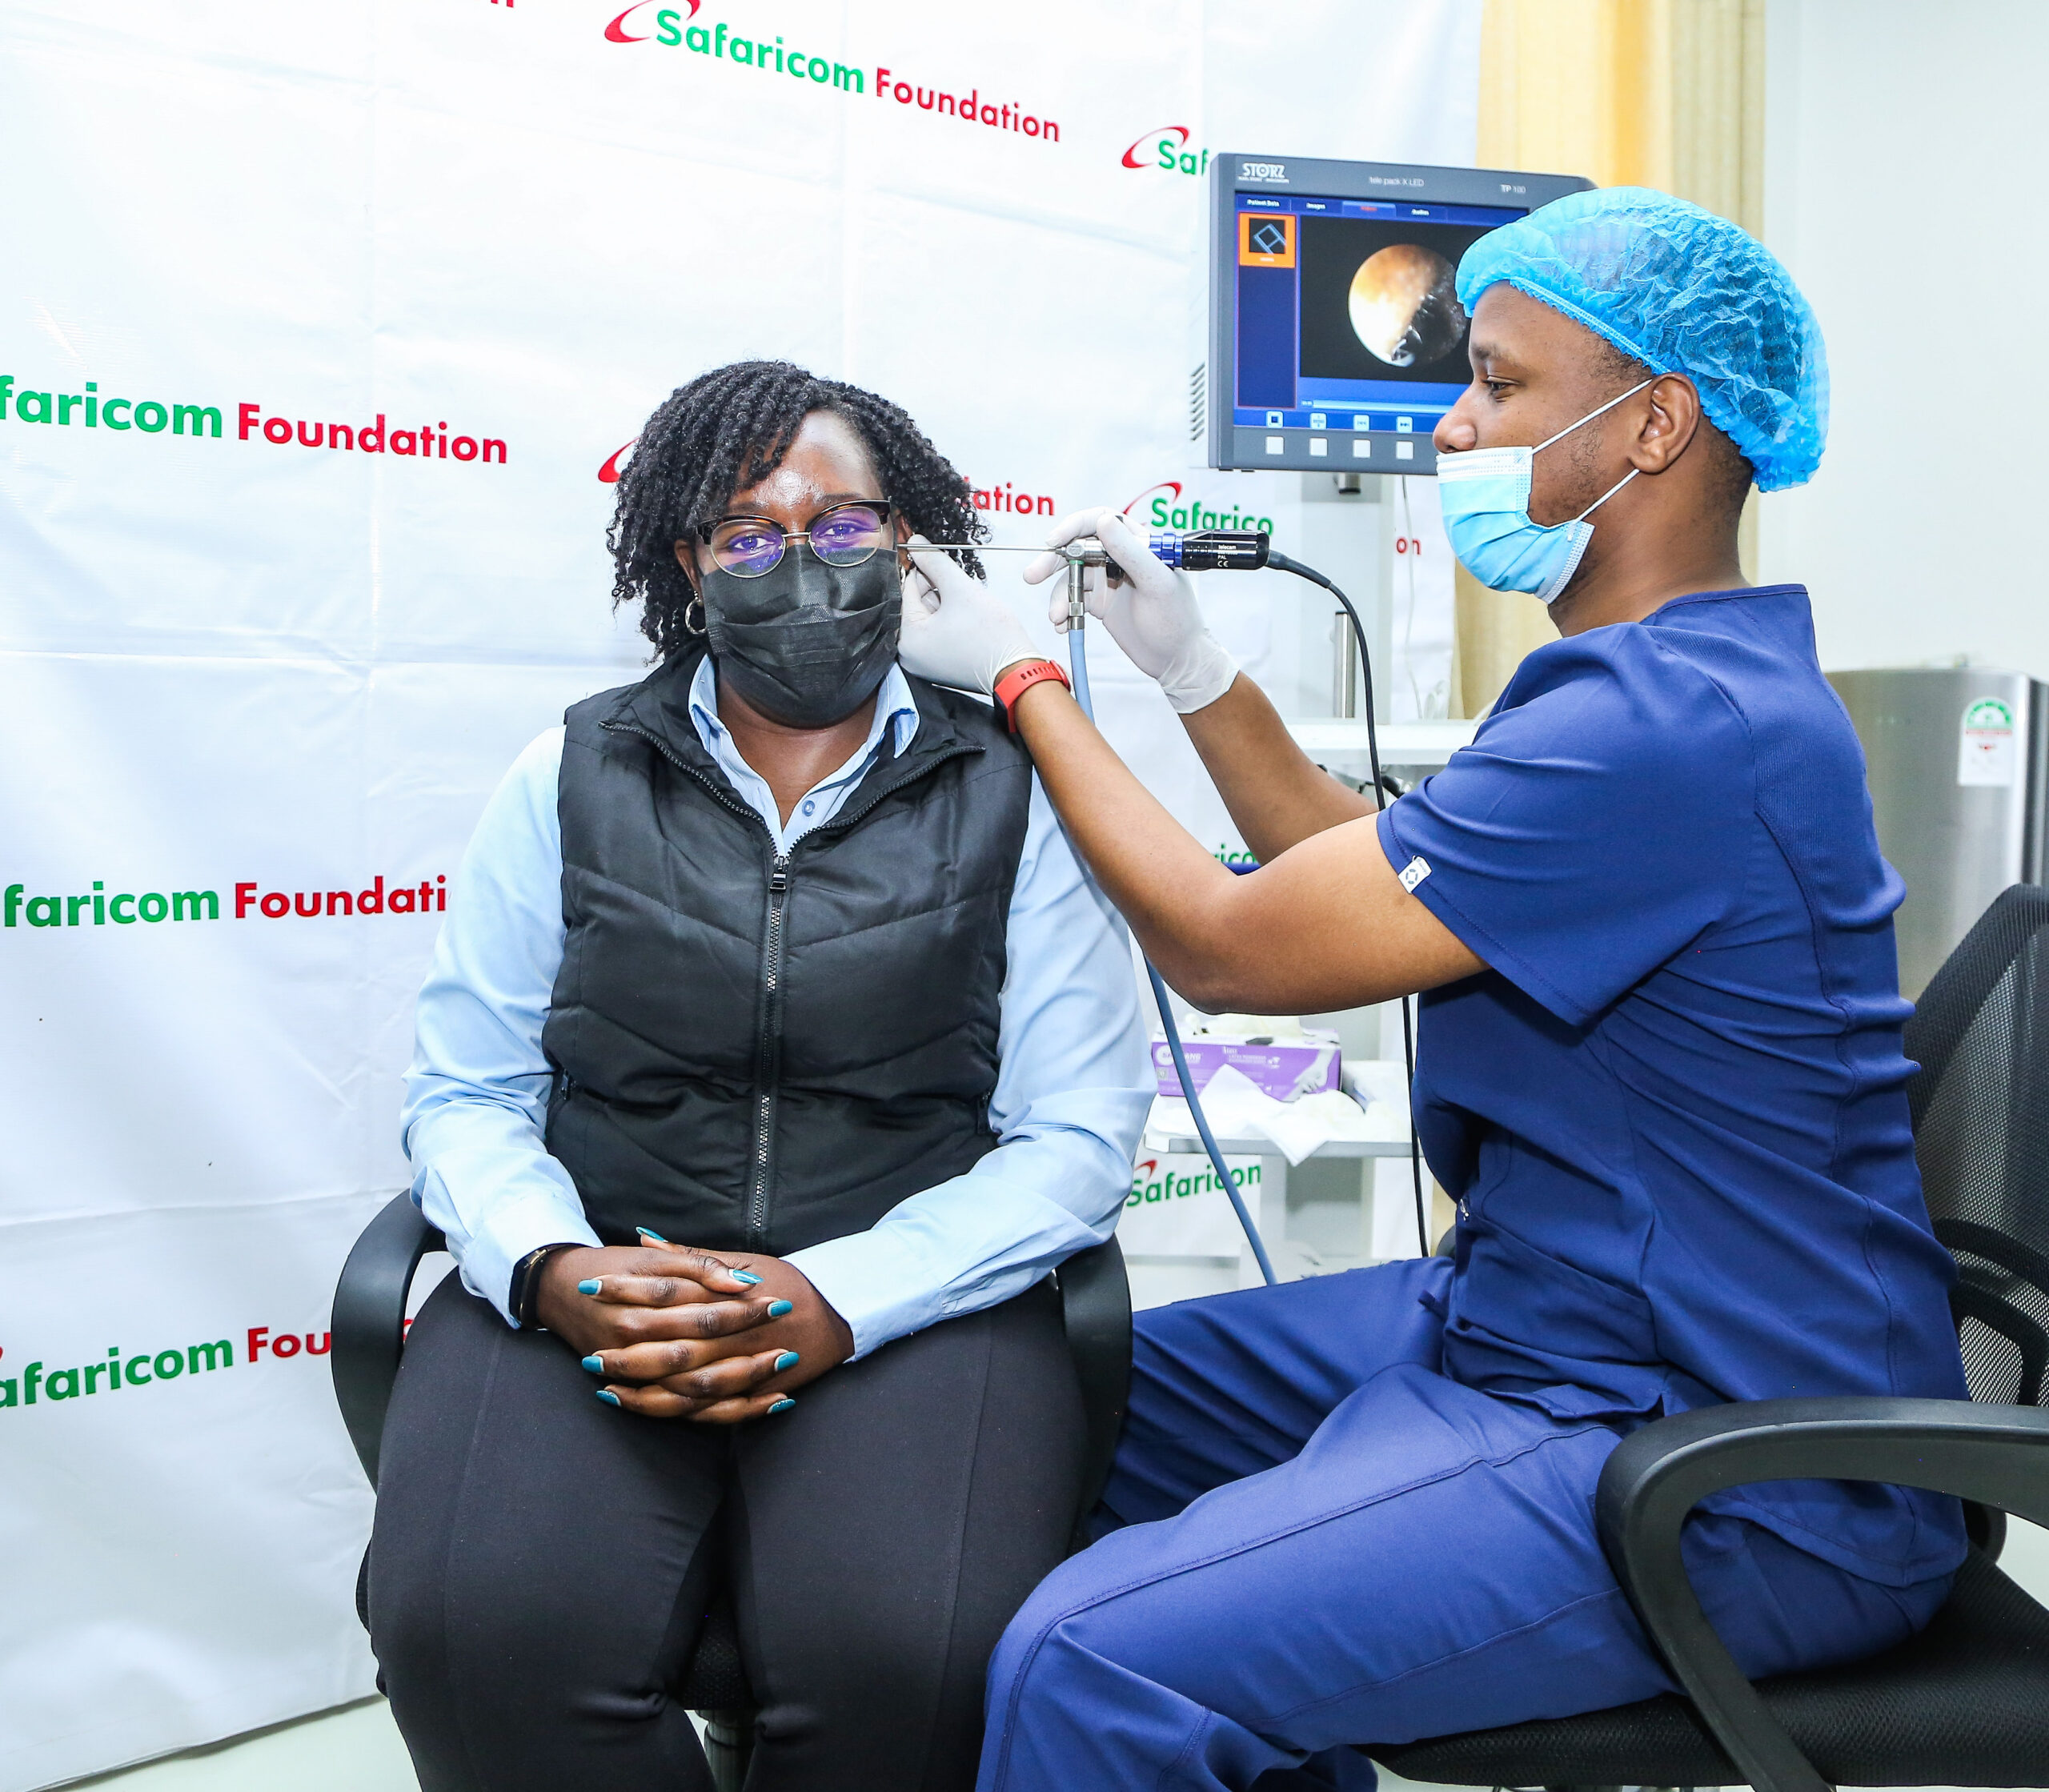 Safaricom Foundation, Operation Ear Drop Kenya Support the Hearing Impaired